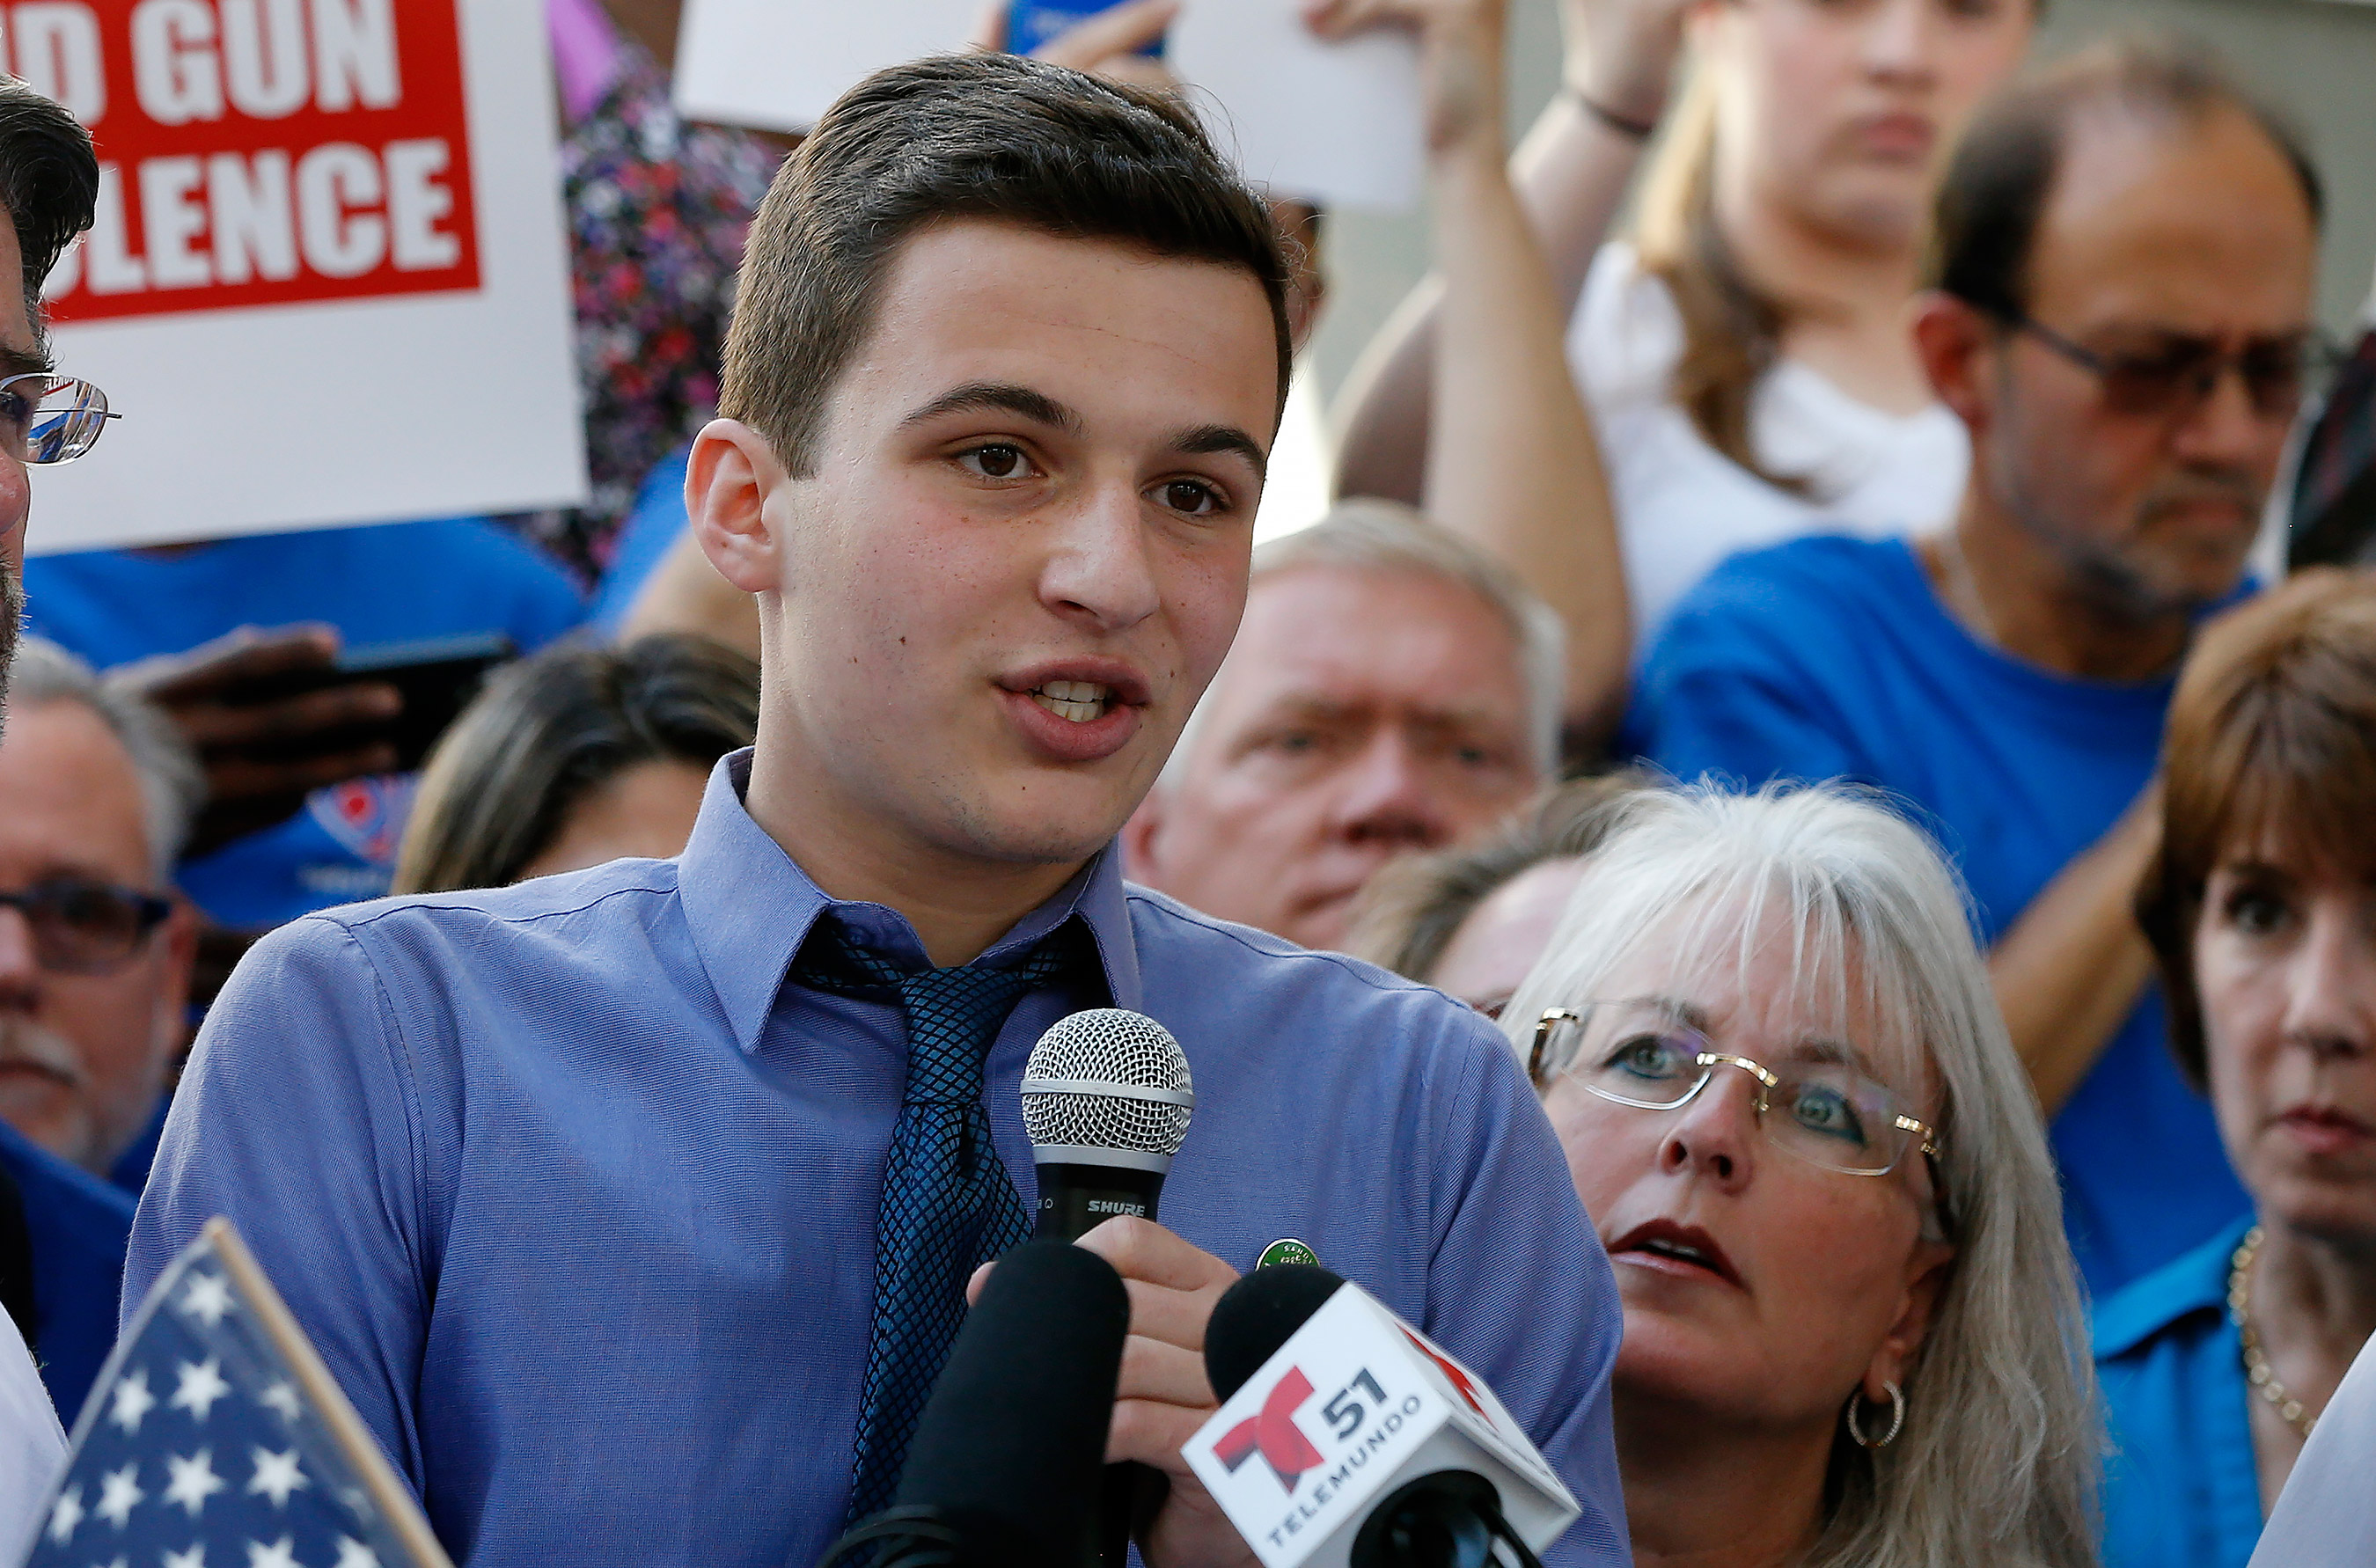 cameron-kasky-march-for-our-lives